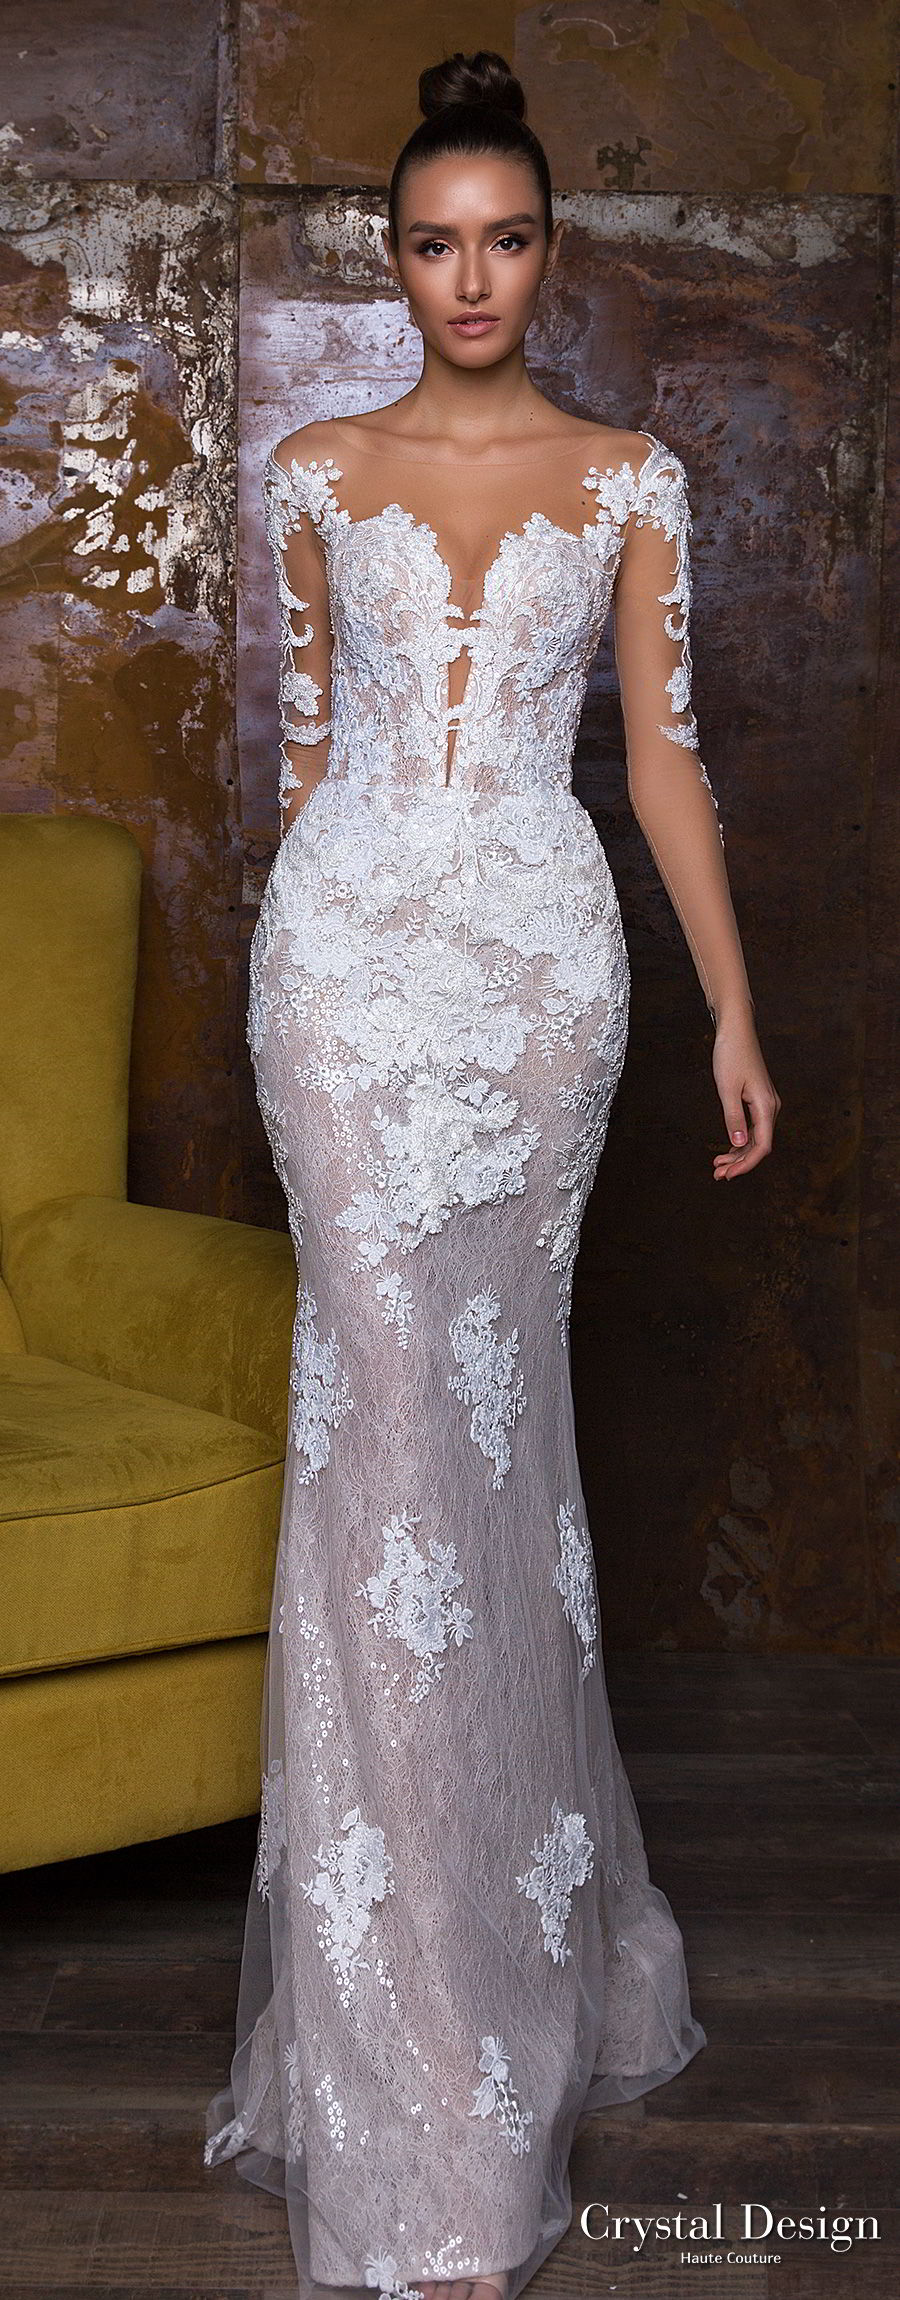 crystal design 2018 long sleeves sheer bateau sweetheart neckline full embellishment peplum princess sheath wedding dress  sheer button royal train (nika) lv